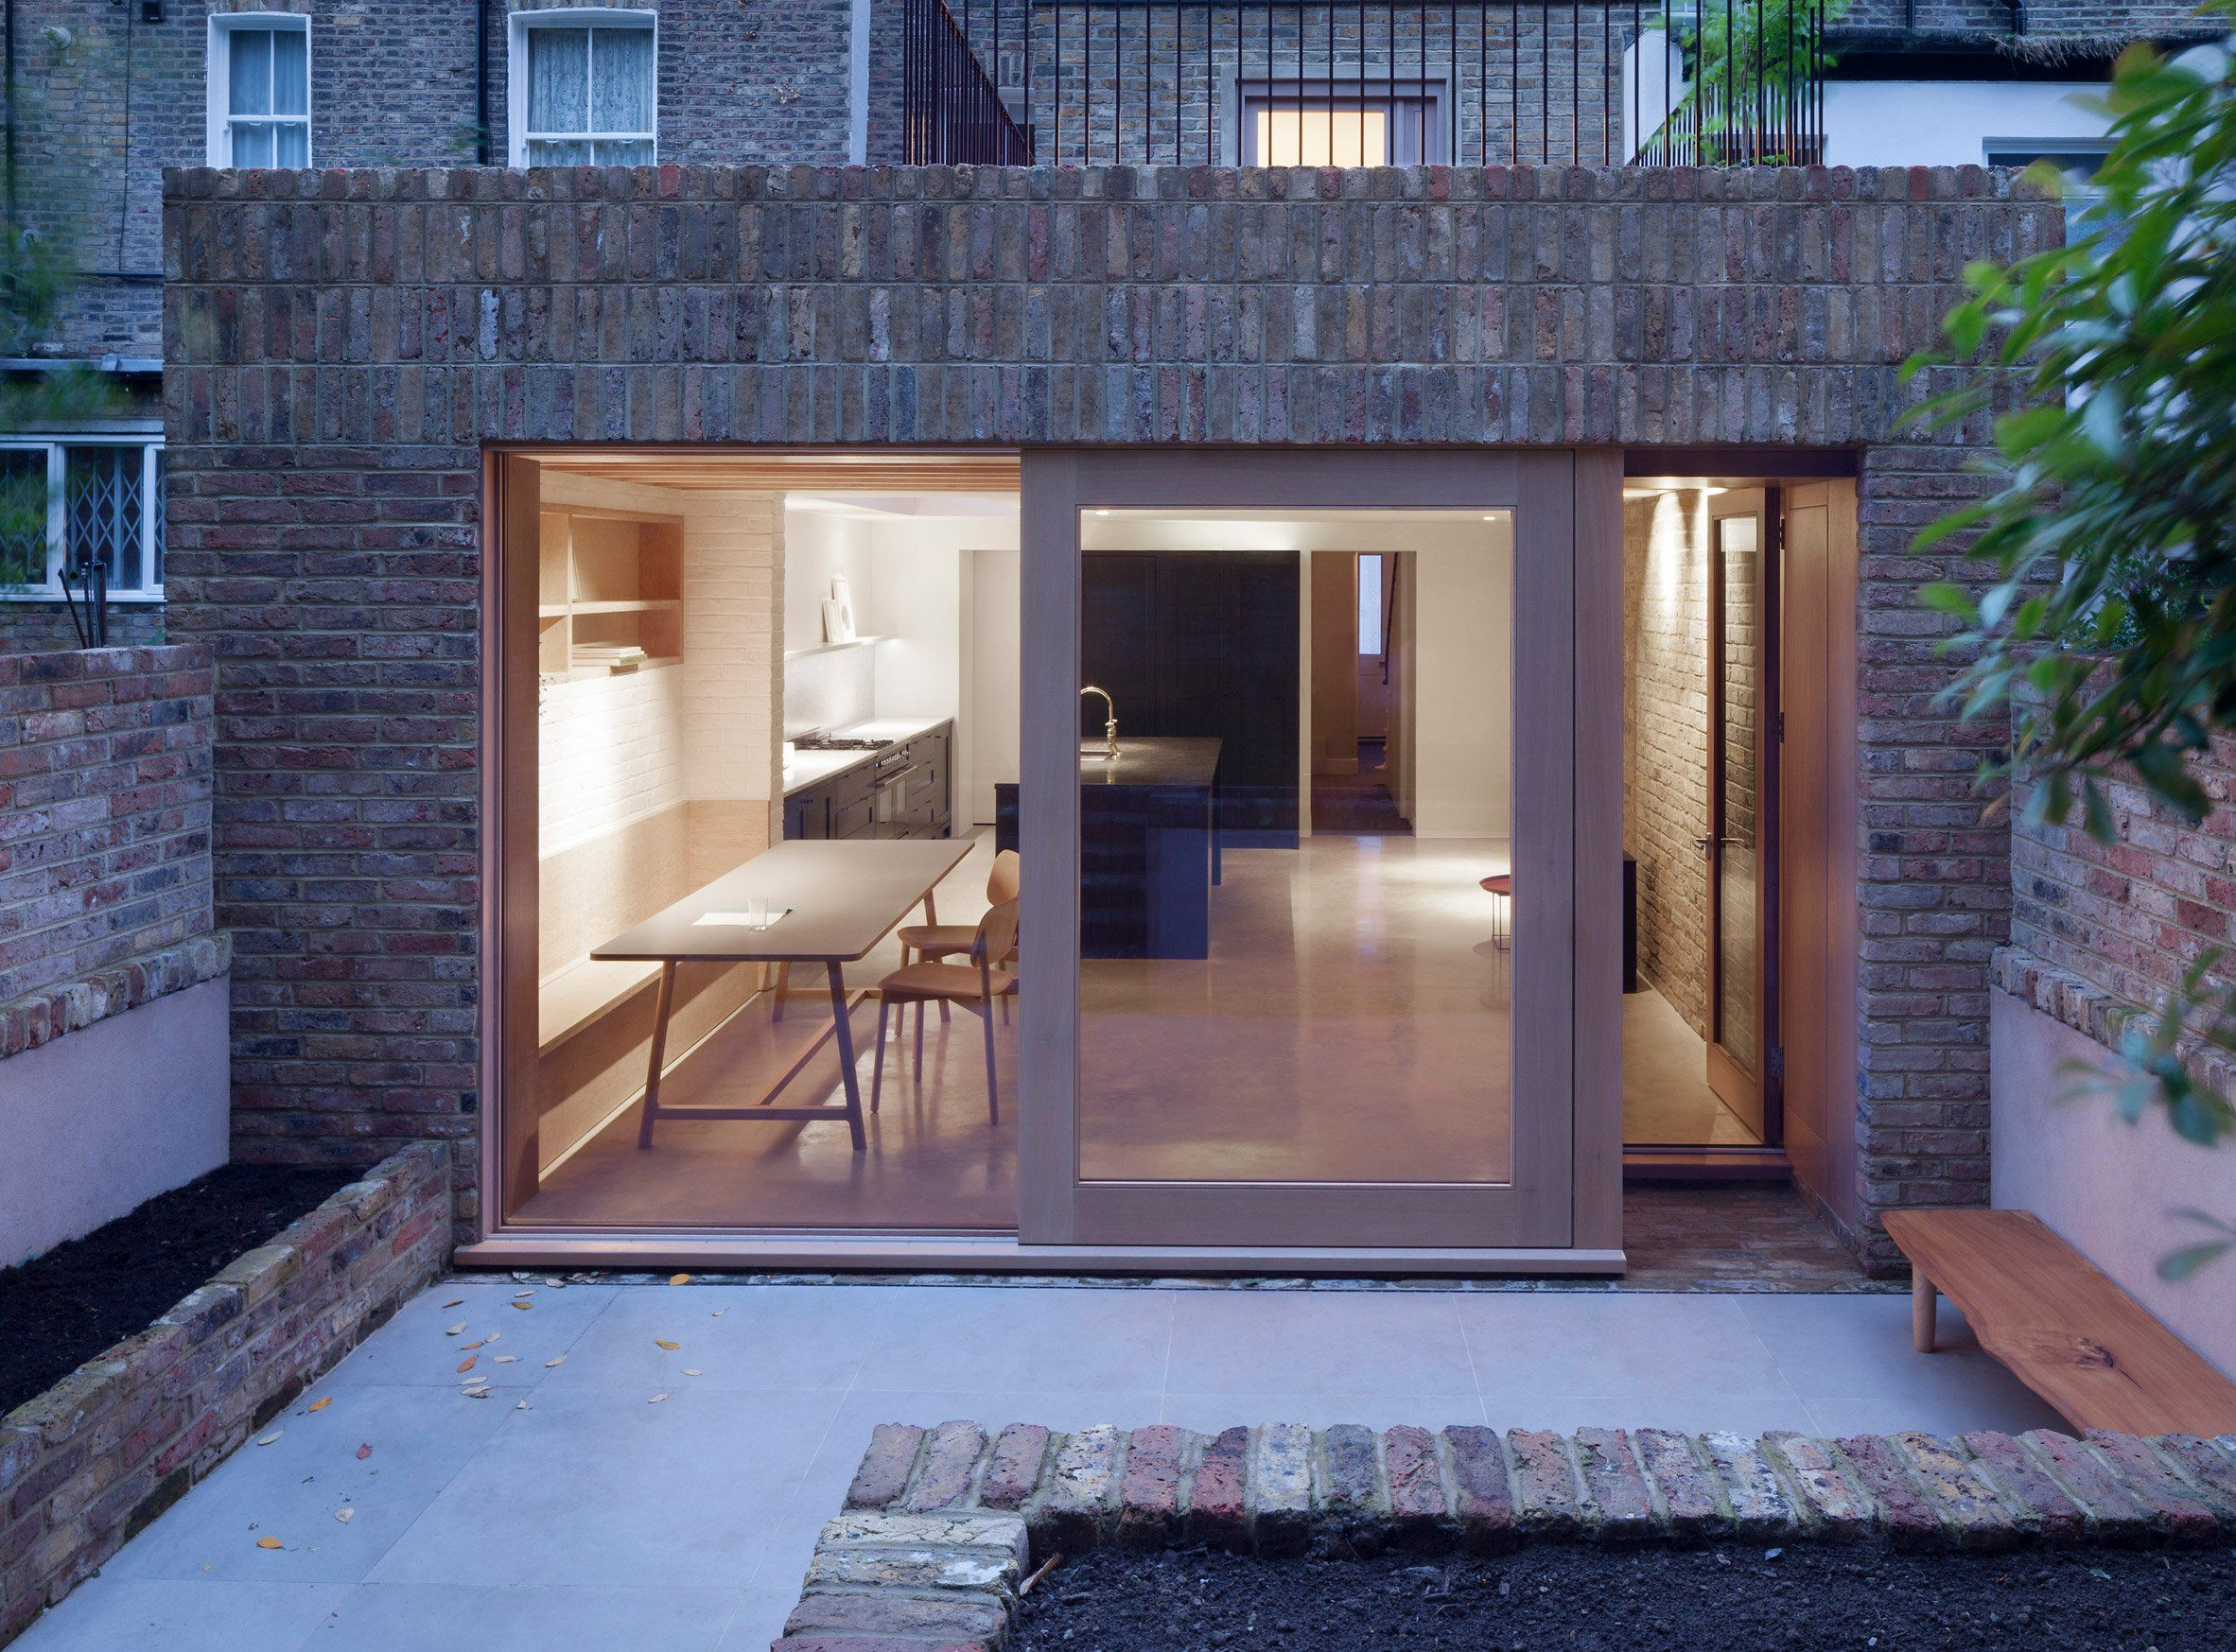 Timber And Textured Brick Surfaces Soften Interior Of Extension By O Sullivan Skoufoglou Architects Floor Renovation Victorian Terrace House Architect